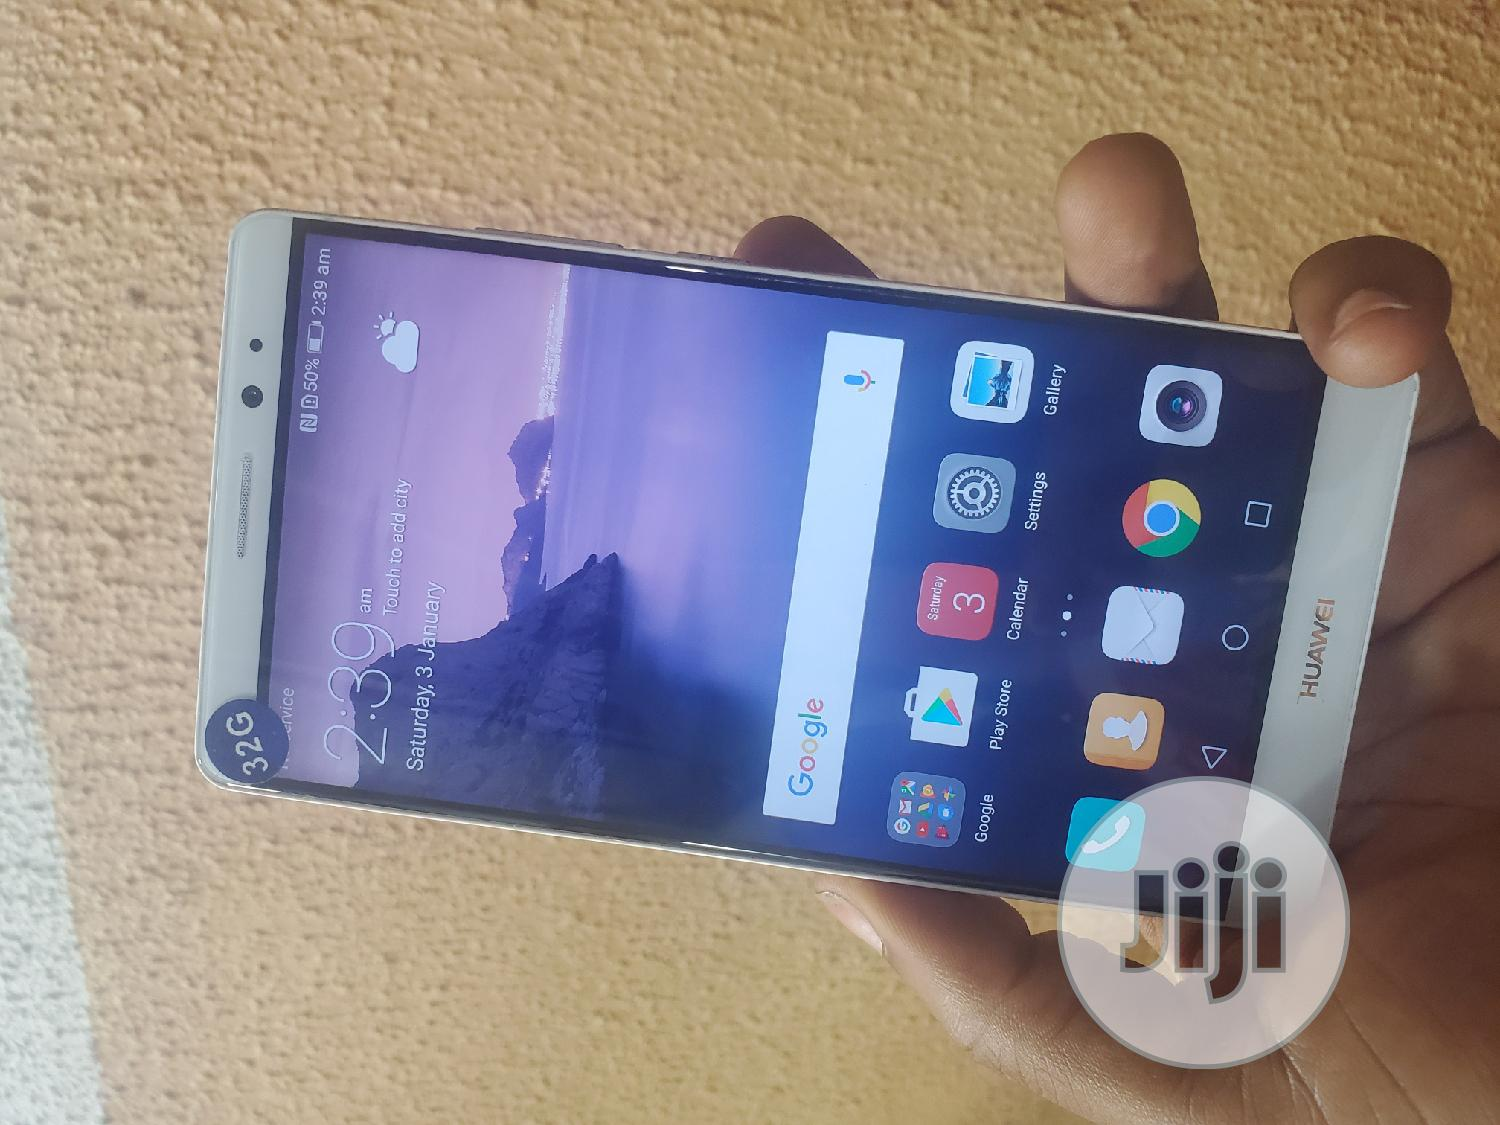 Huawei Mate 8 32 GB Gold | Mobile Phones for sale in Ikeja, Lagos State, Nigeria